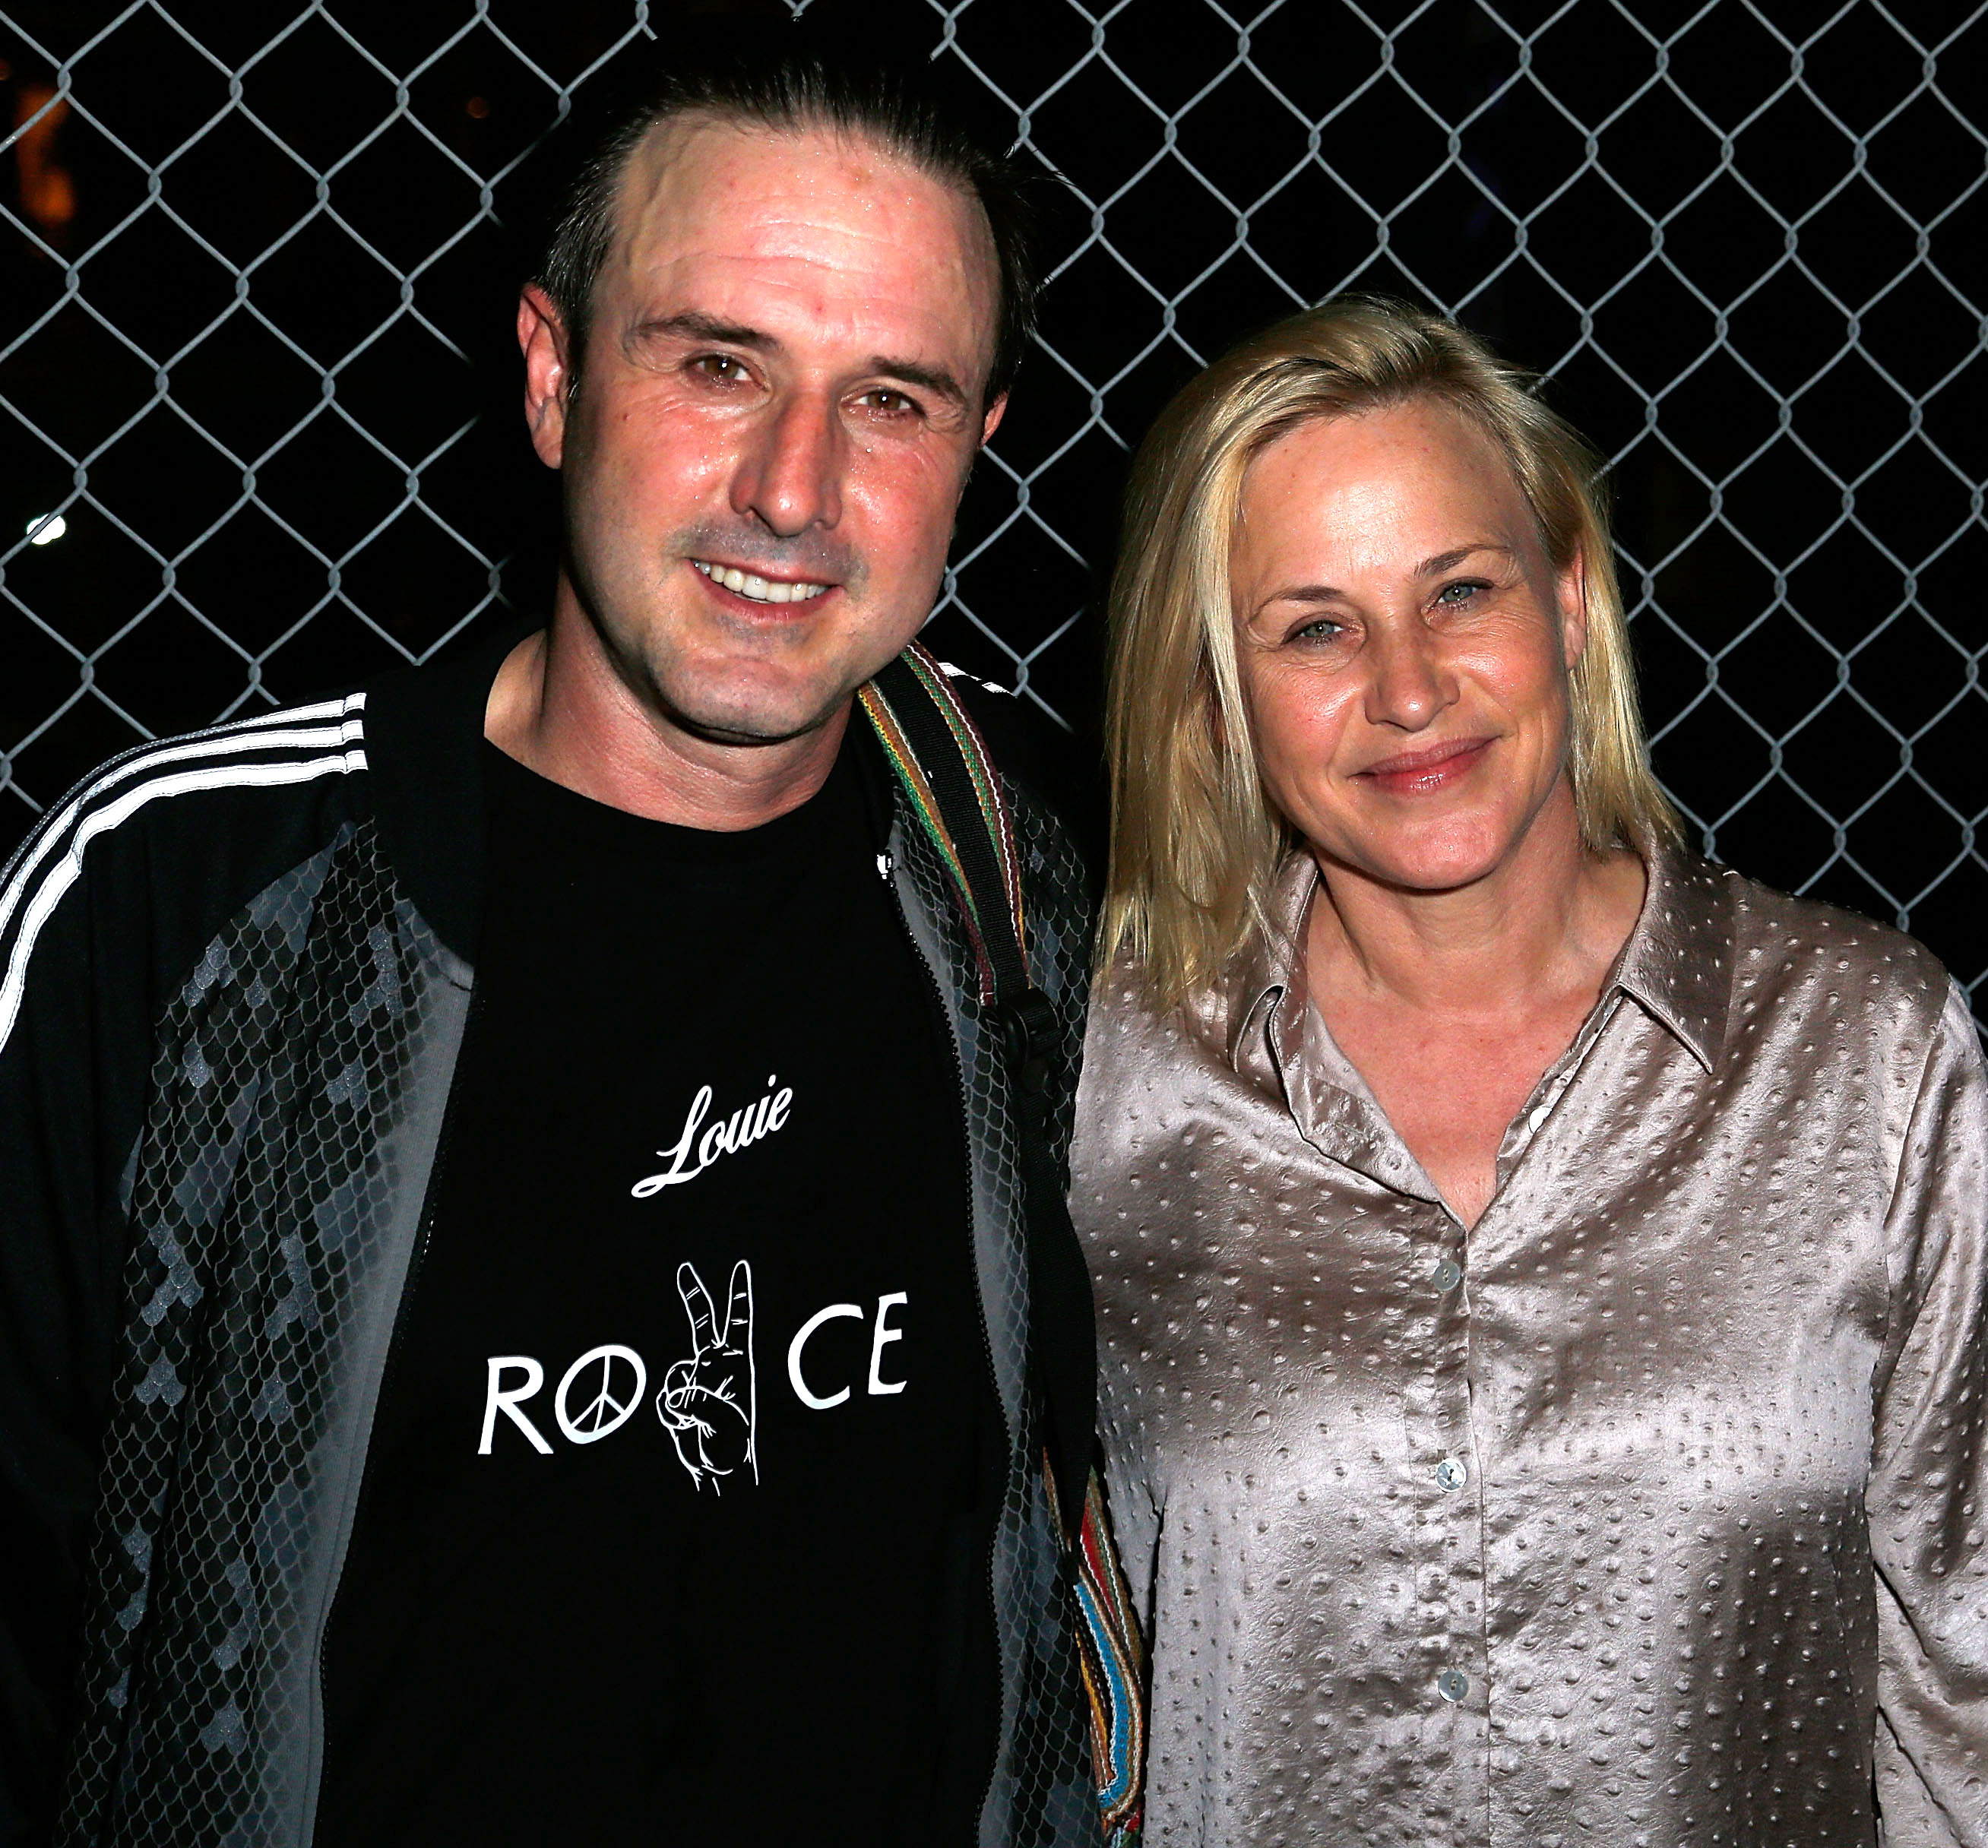 """David Arquette Had Heart Attack Before Wrestling Return, Says Sister Patricia - David Arquette and Patricia Arquette attend the after party for the opening night of Sir Arthur Conan Doyle's """"Sherlock Holmes"""" on October 15, 2015 in Hollywood, California."""